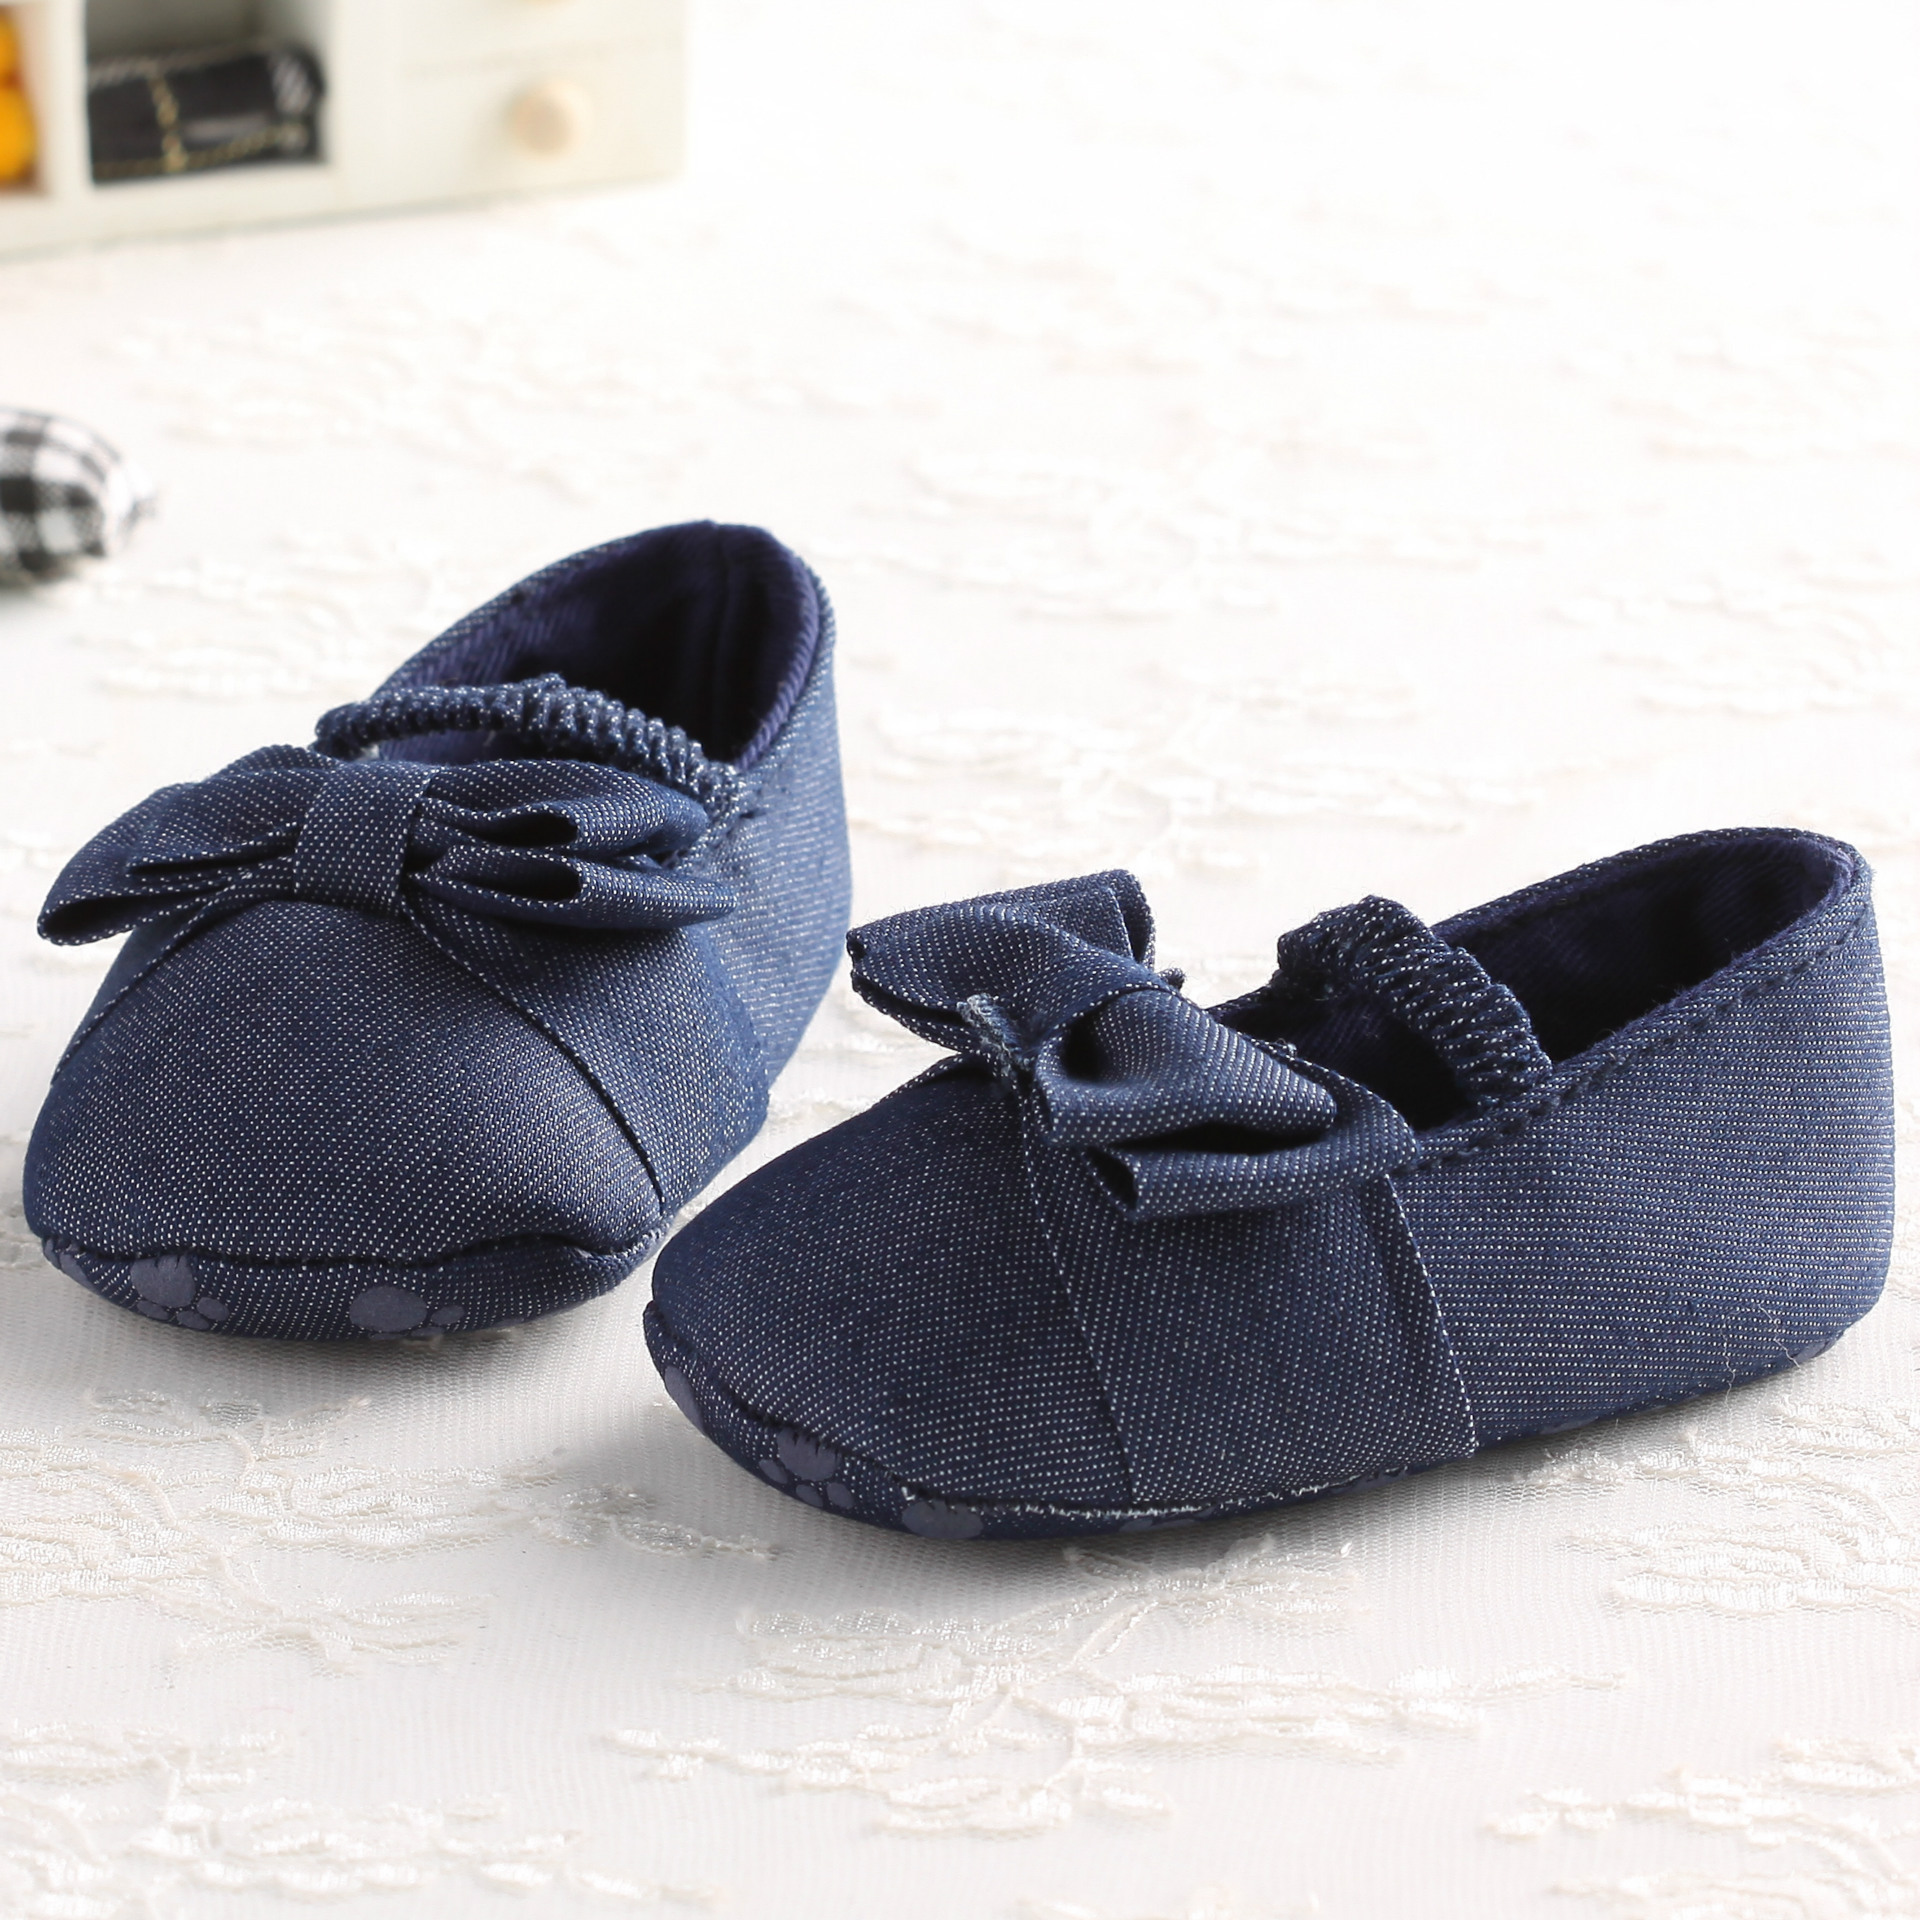 Newborn Baby Girl Shoes 0-1 Years Comfortable Prewalker Walking Toddlers Bowknot Jean Special  Soft Bottom Summer Shoes For Girl